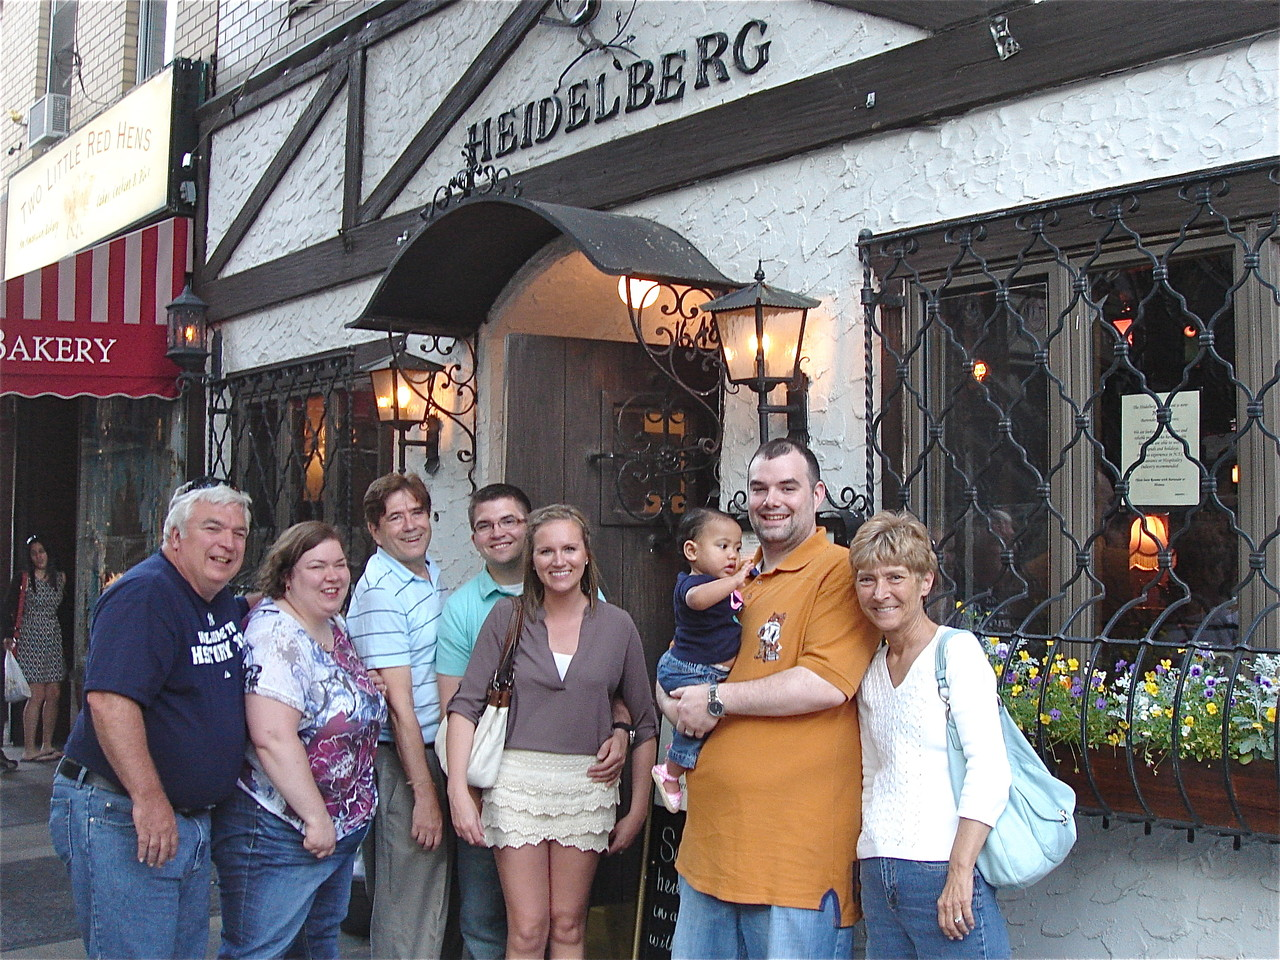 Steve Theisen, Jessica, John Wagner, Jonathan, Katie, Josie, Nick, & Sue outside the Heidelberg Rest. NYC 6-20-2013